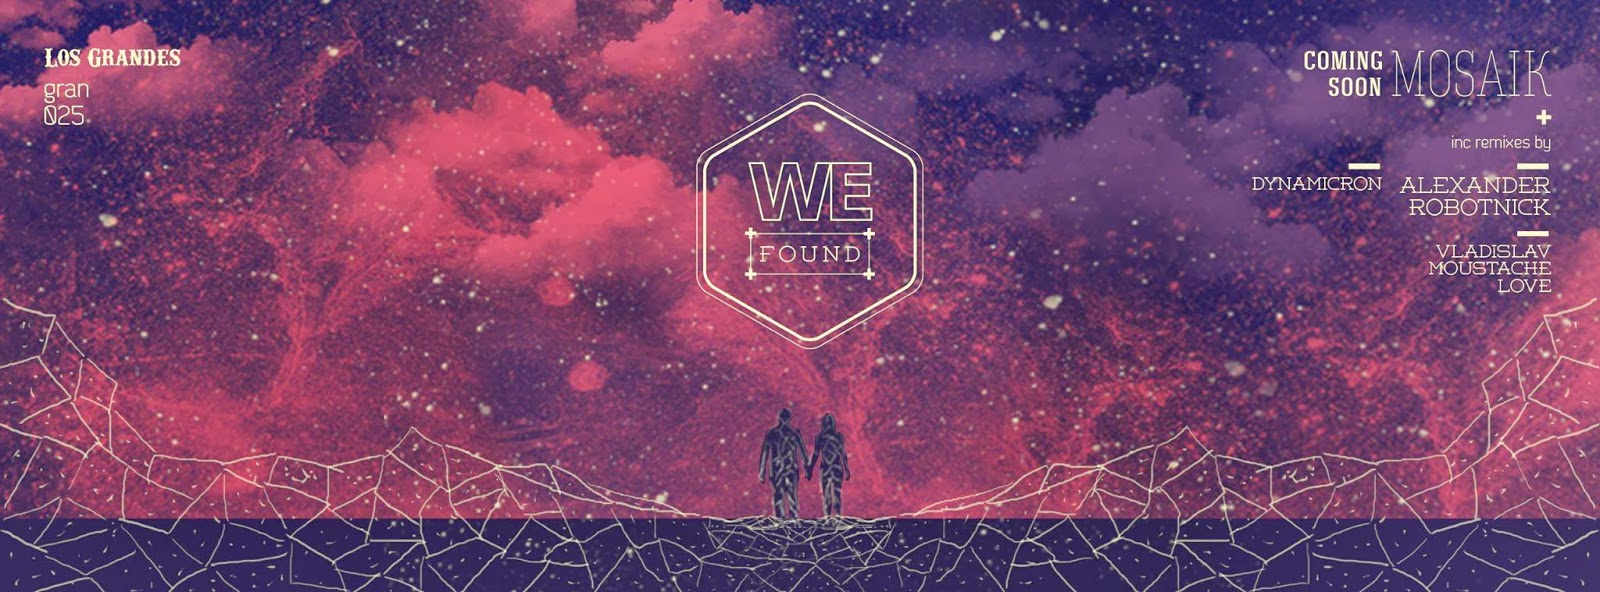 MOSAIK - We Found EP